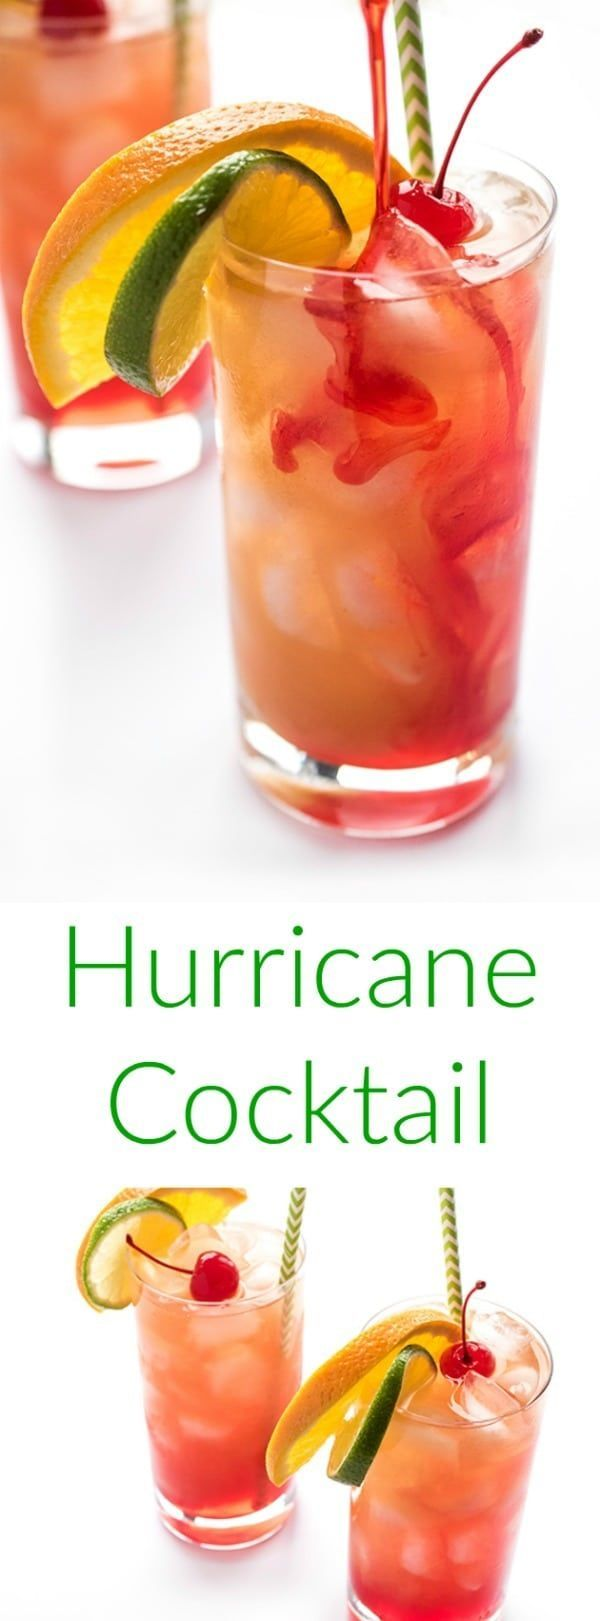 The hurricane cocktail is a fruity rum punch made famous in New Orleans. The ultimate crowd-pleasing cocktail recipe #rumdrinks